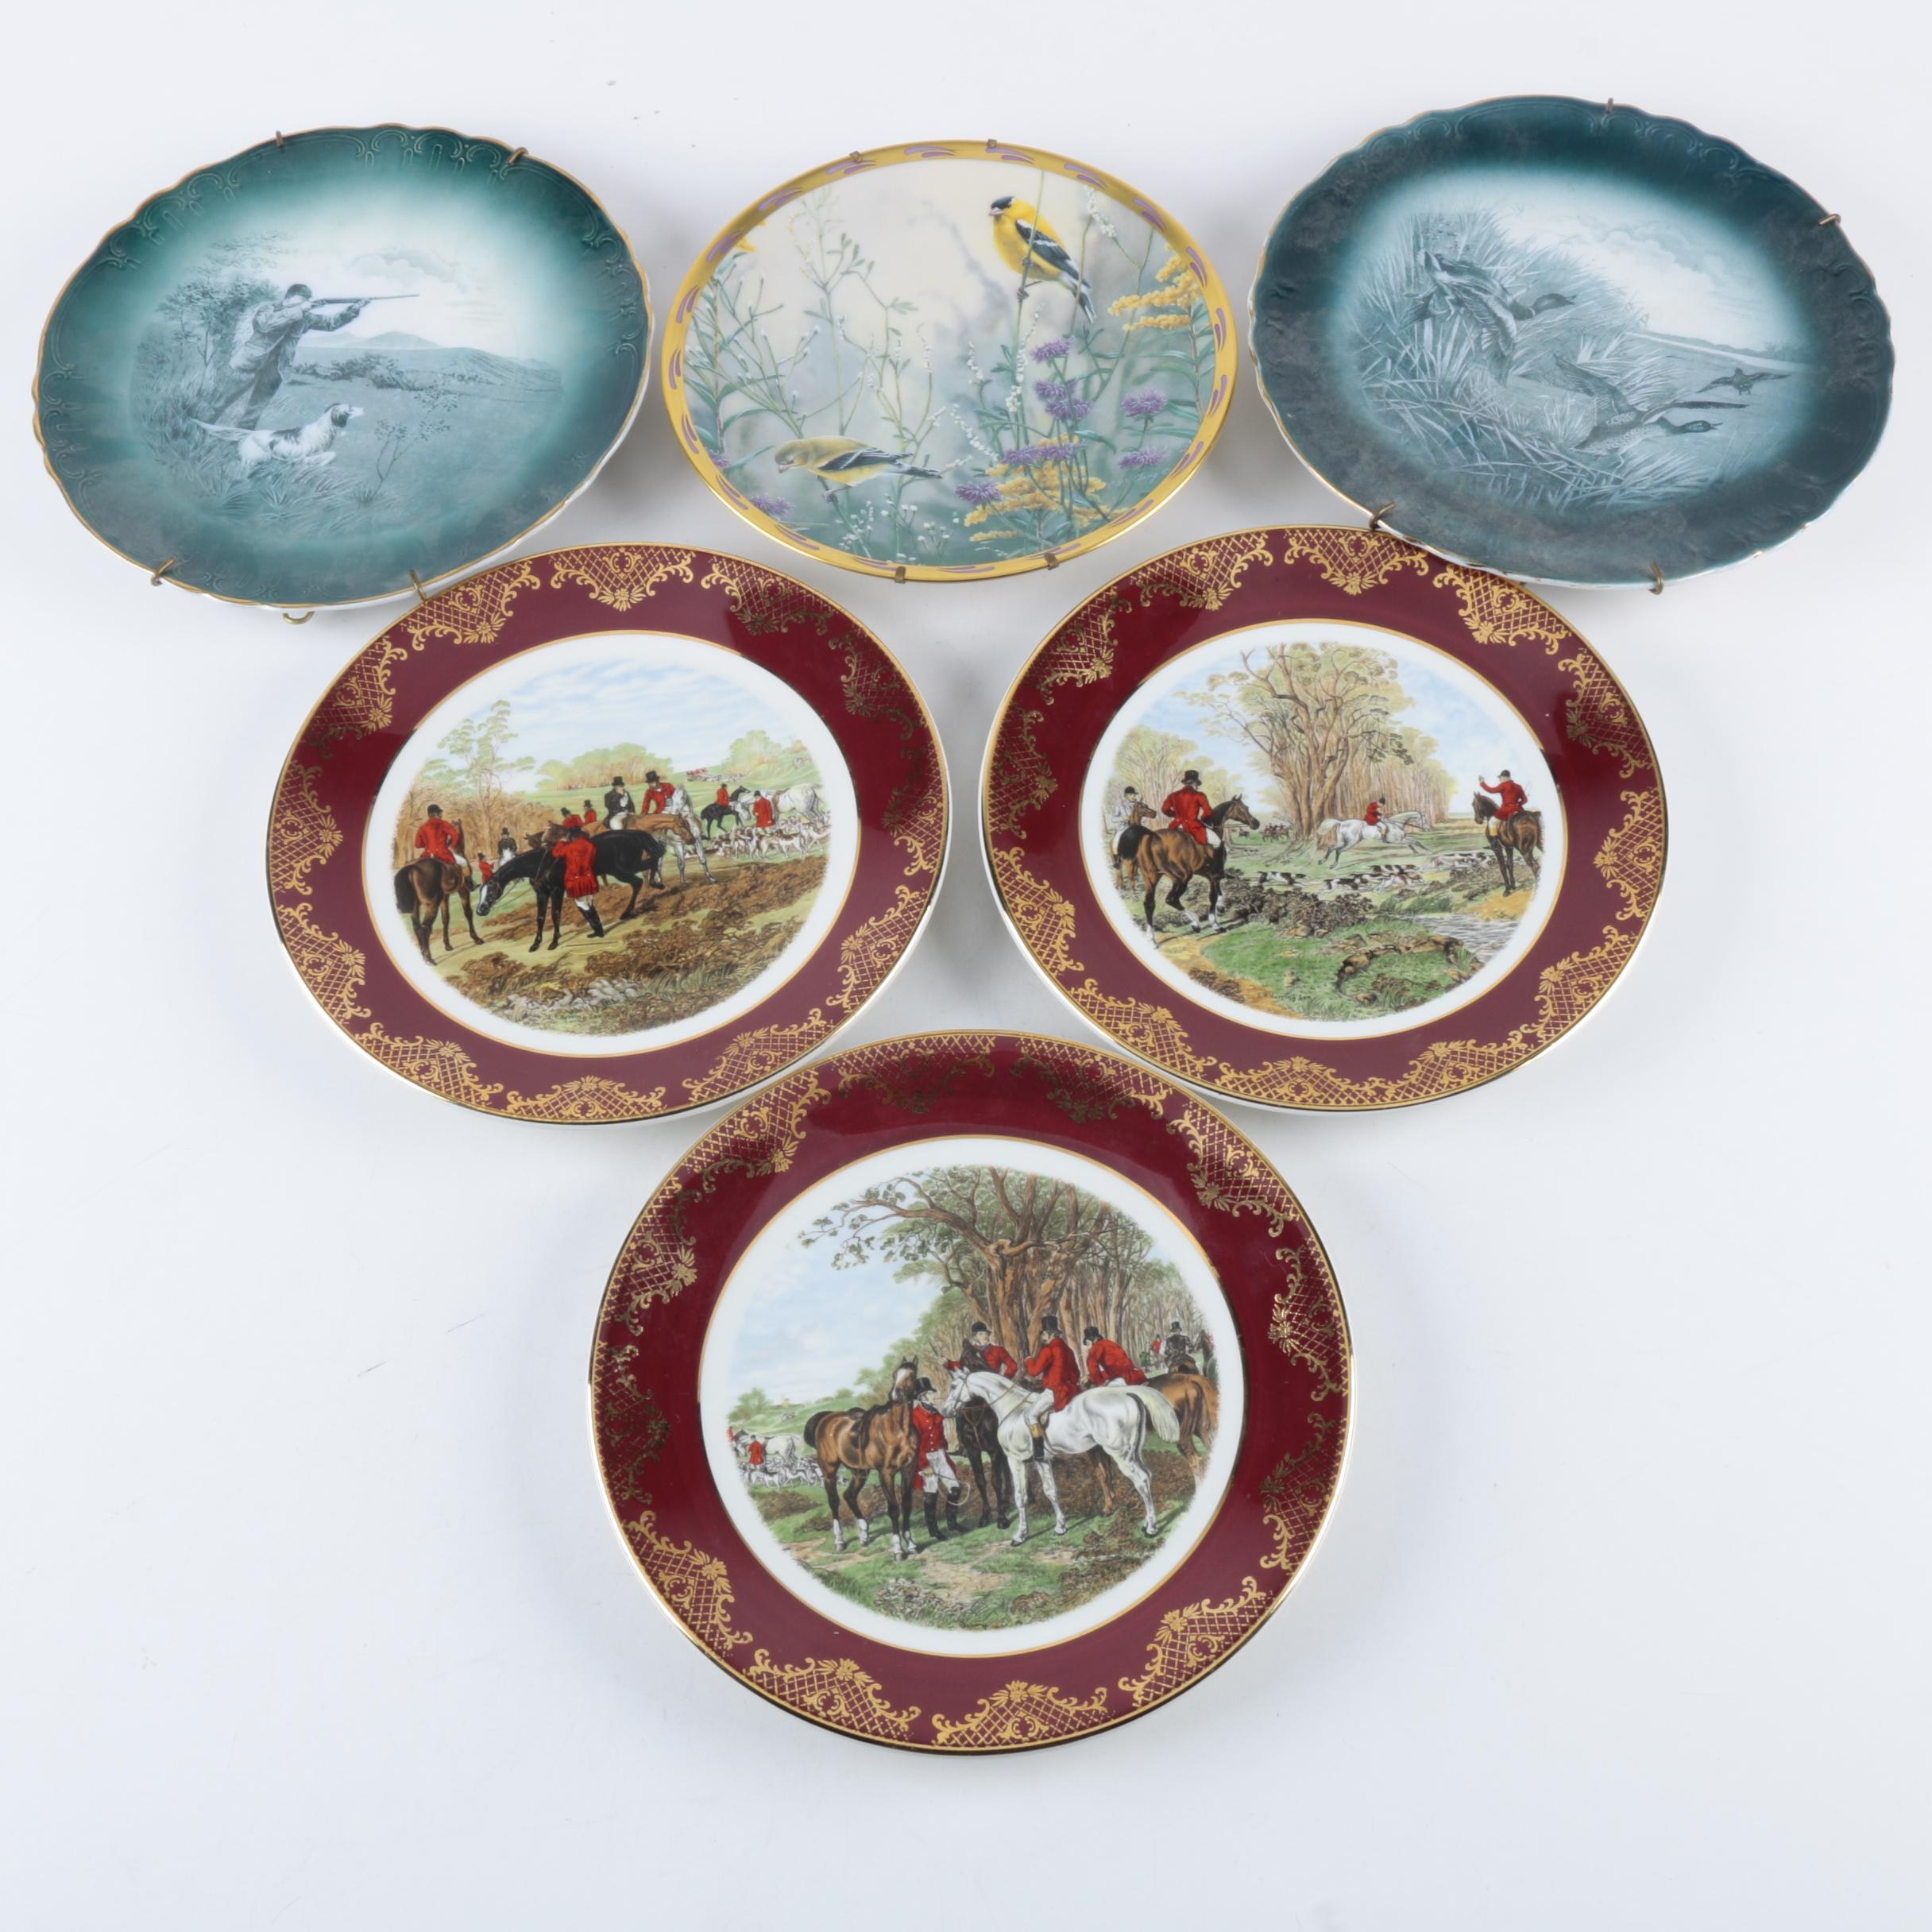 Decorative Porcelain Plates